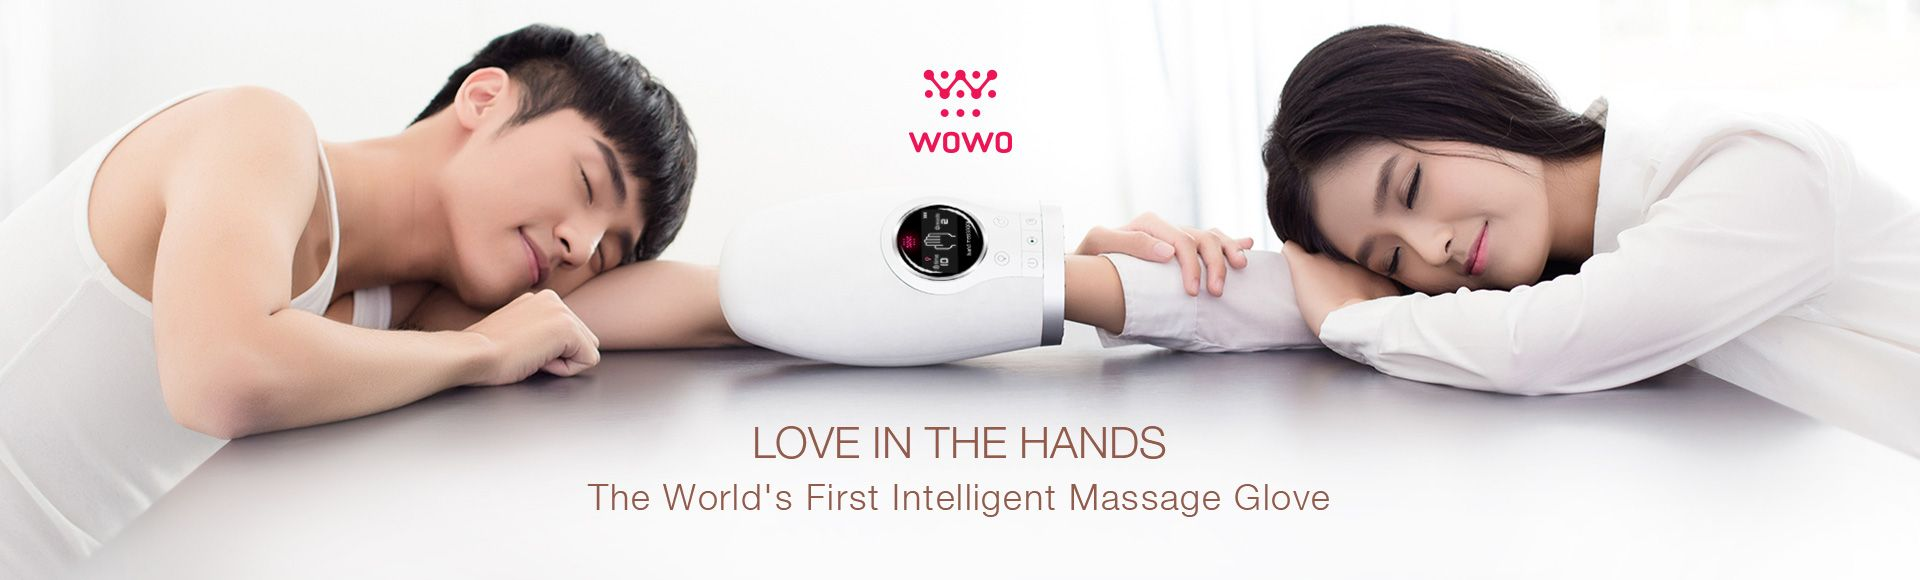 Breo WOWO Smart Hand Massager - Hand reflexology, WOWO APP control,Rechargeable hand palm massager digital therapy